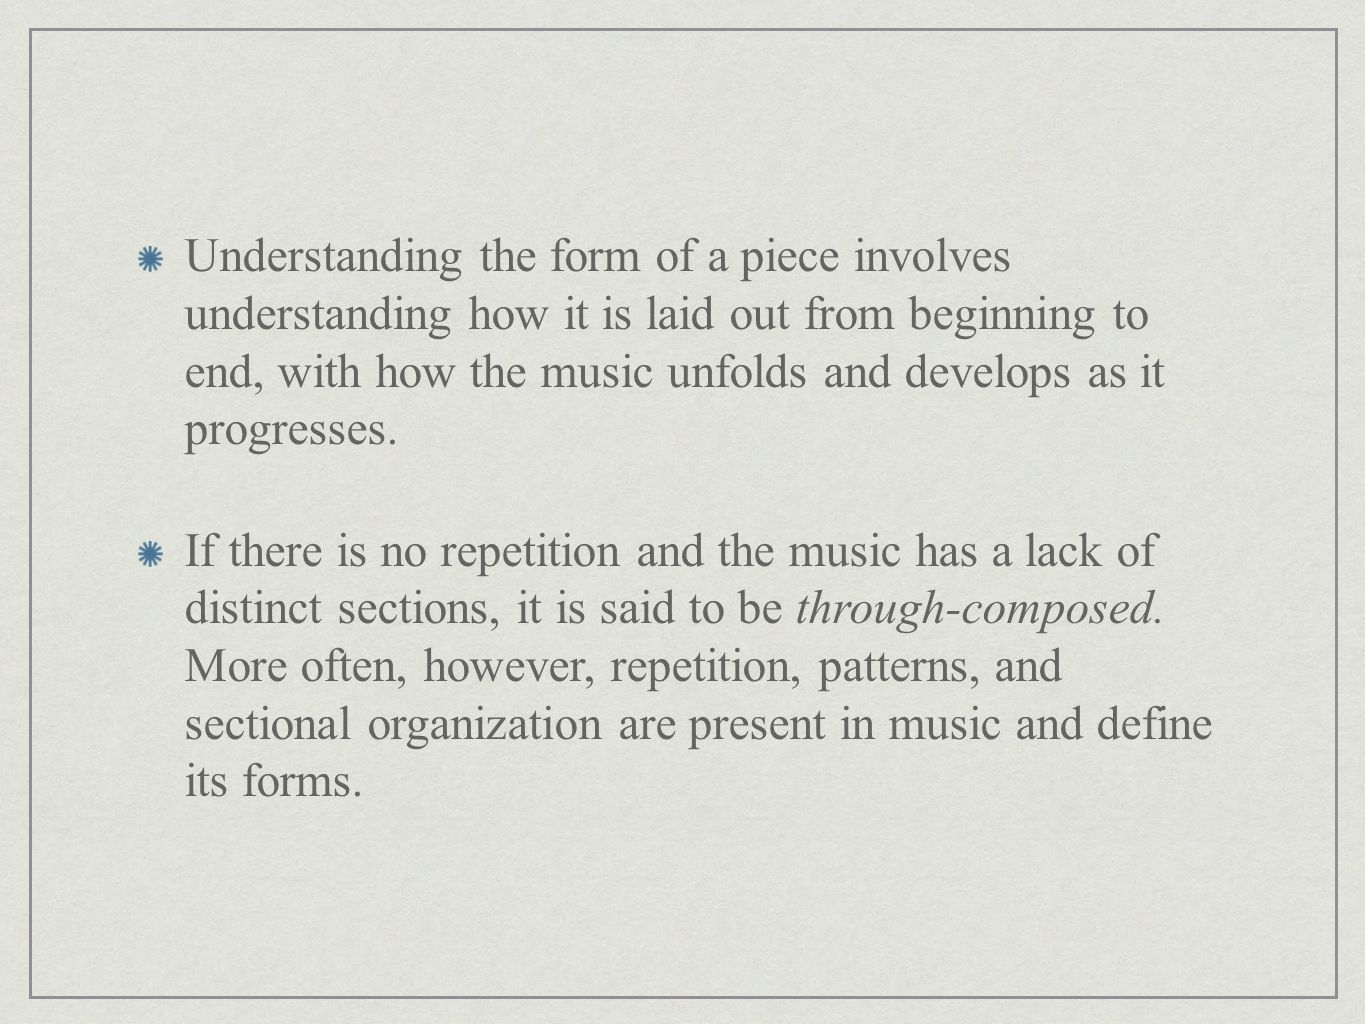 Understanding the form of a piece involves understanding how it is laid out from beginning to end, with how the music unfolds and develops as it progresses.